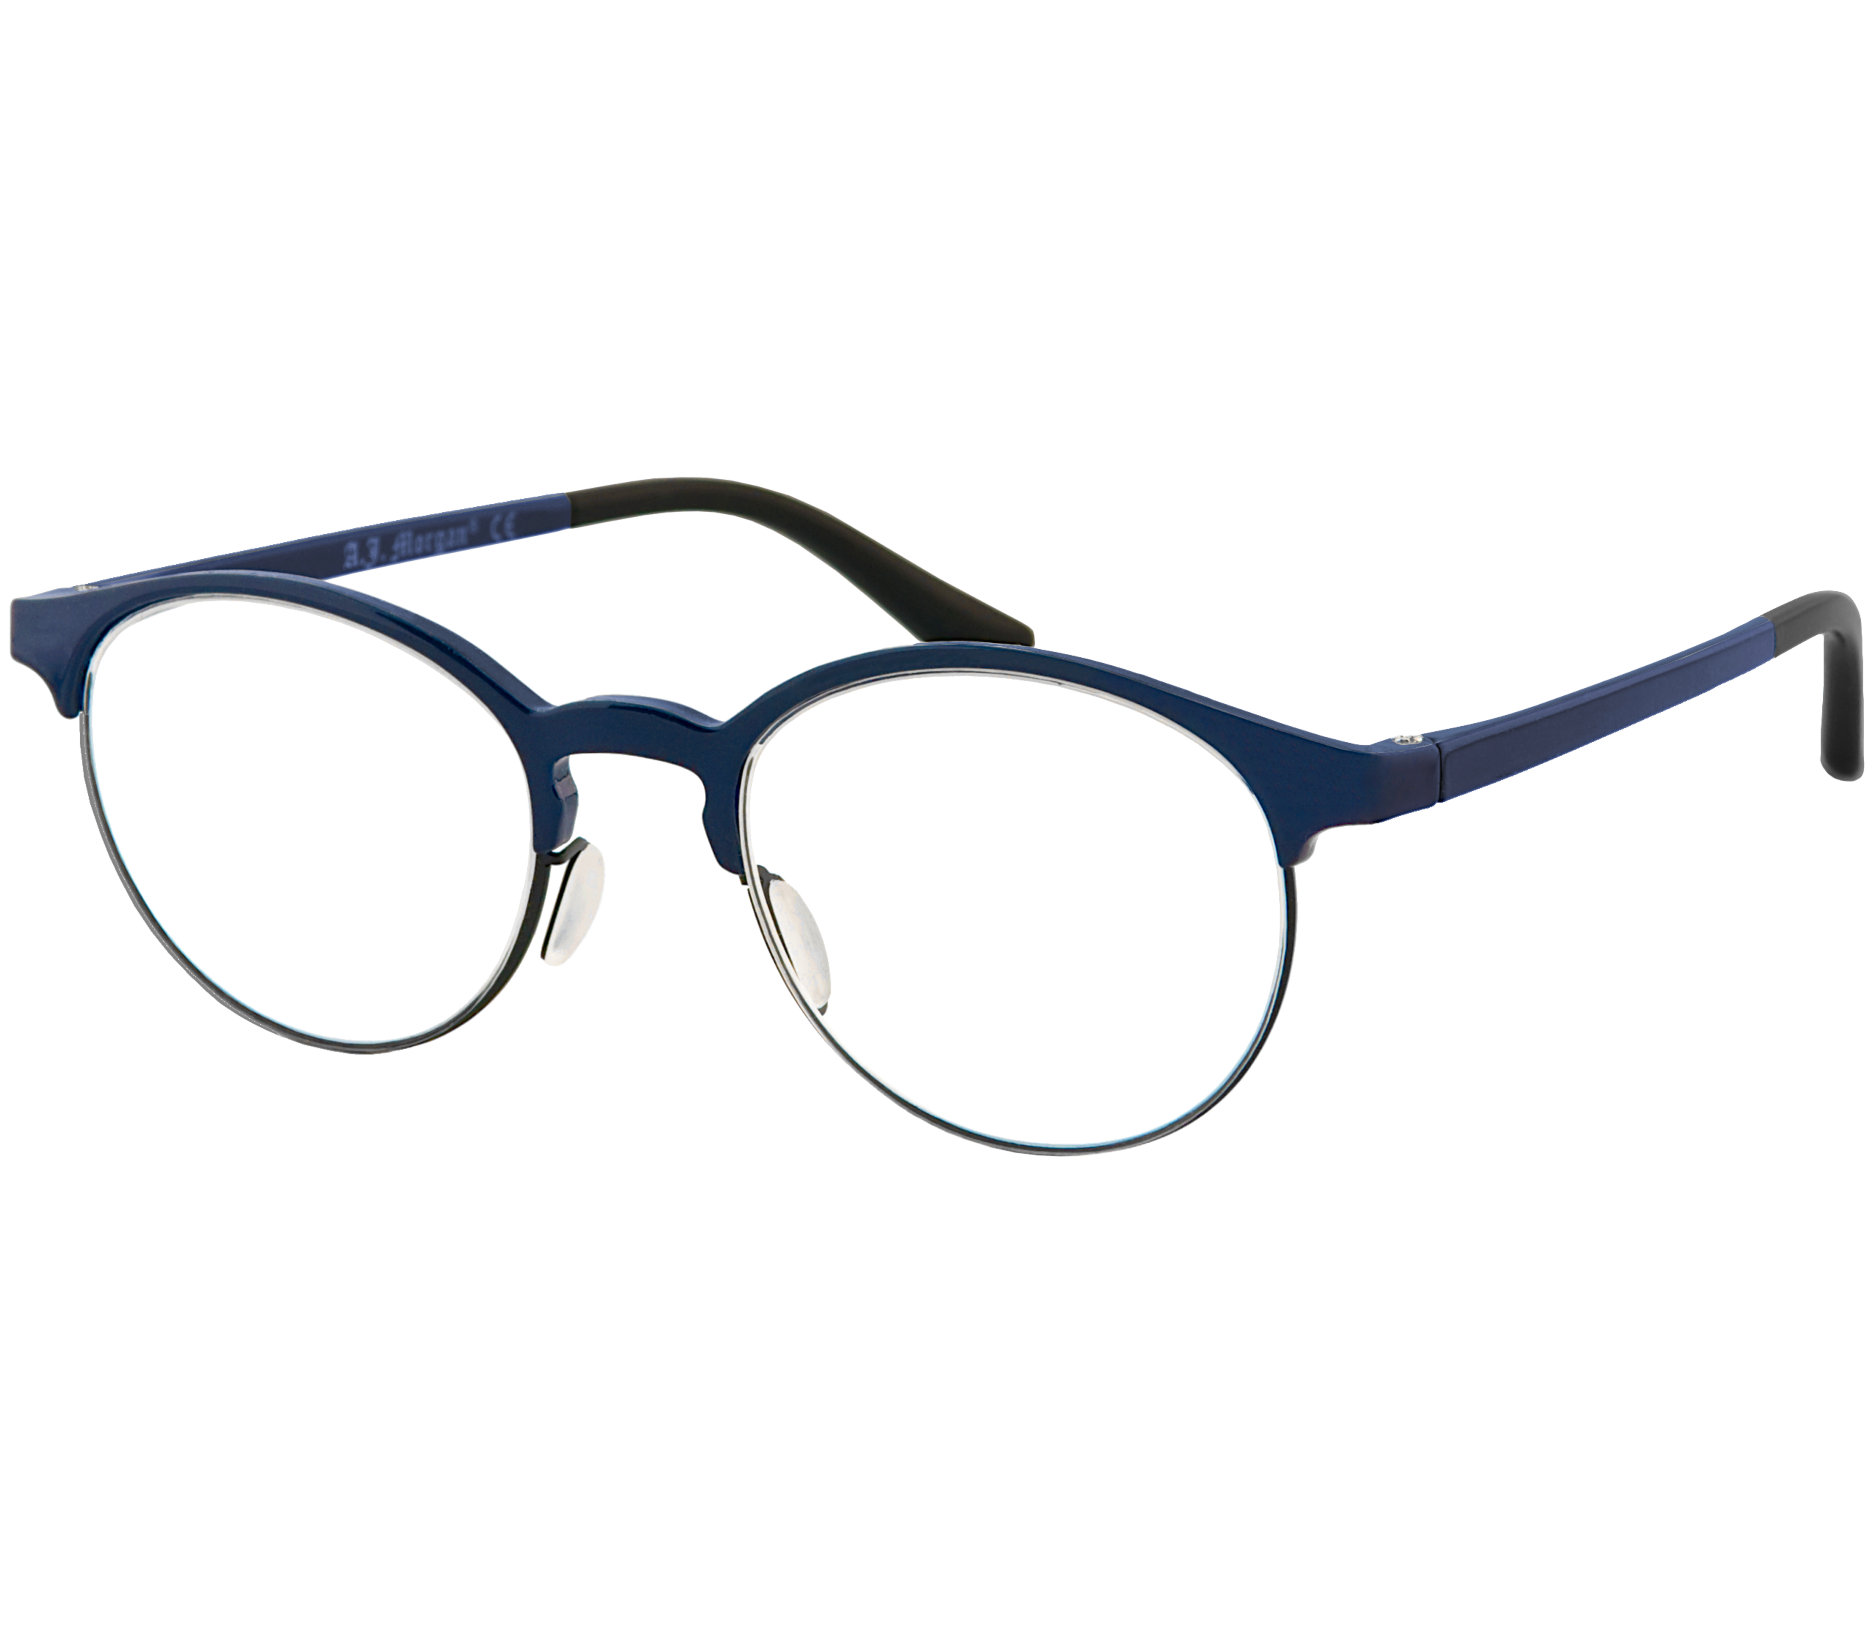 Main Image (Angle) - Chester (Blue) Round Reading Glasses